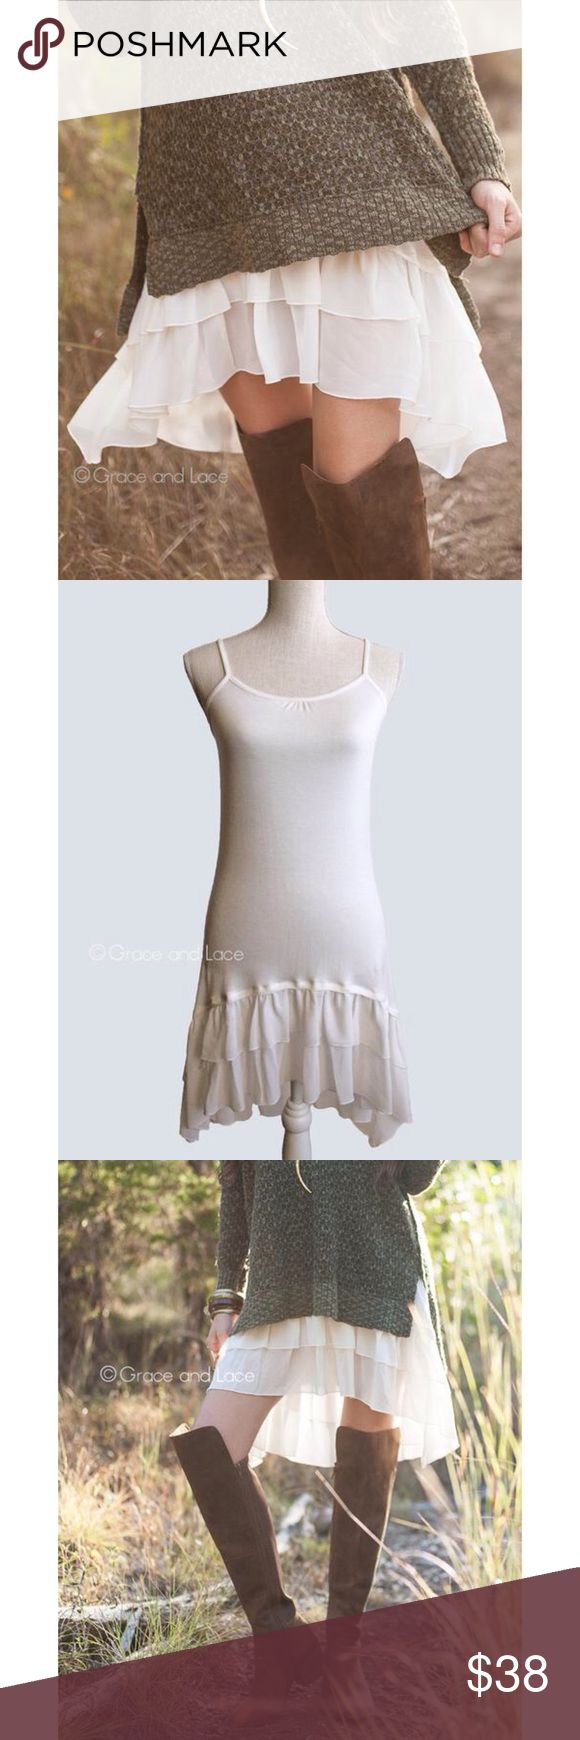 "(M) Grace & Lace Chiffon Dress Extender  Wear it under dresses, sweaters for added length  Size Medium (Size 6-8)  Bust: 30""  Length front (neckline to bottom of chiffon) 25""  Length back (center top to bottom of chiffon) 29 5/8"" Grace & Lace Intimates & Sleepwear Chemises & Slips"